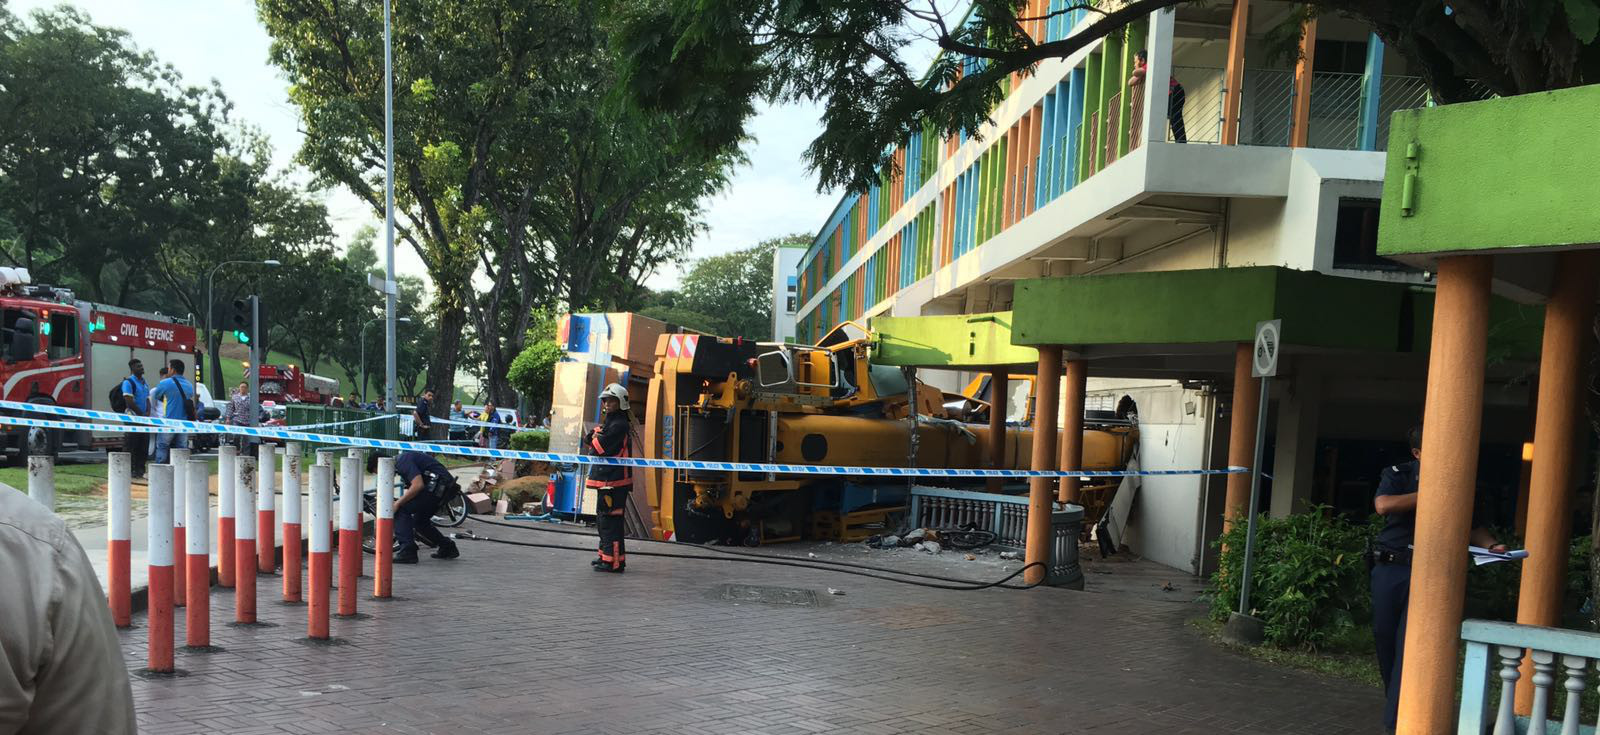 SCDF cordon off area of the demised crane.